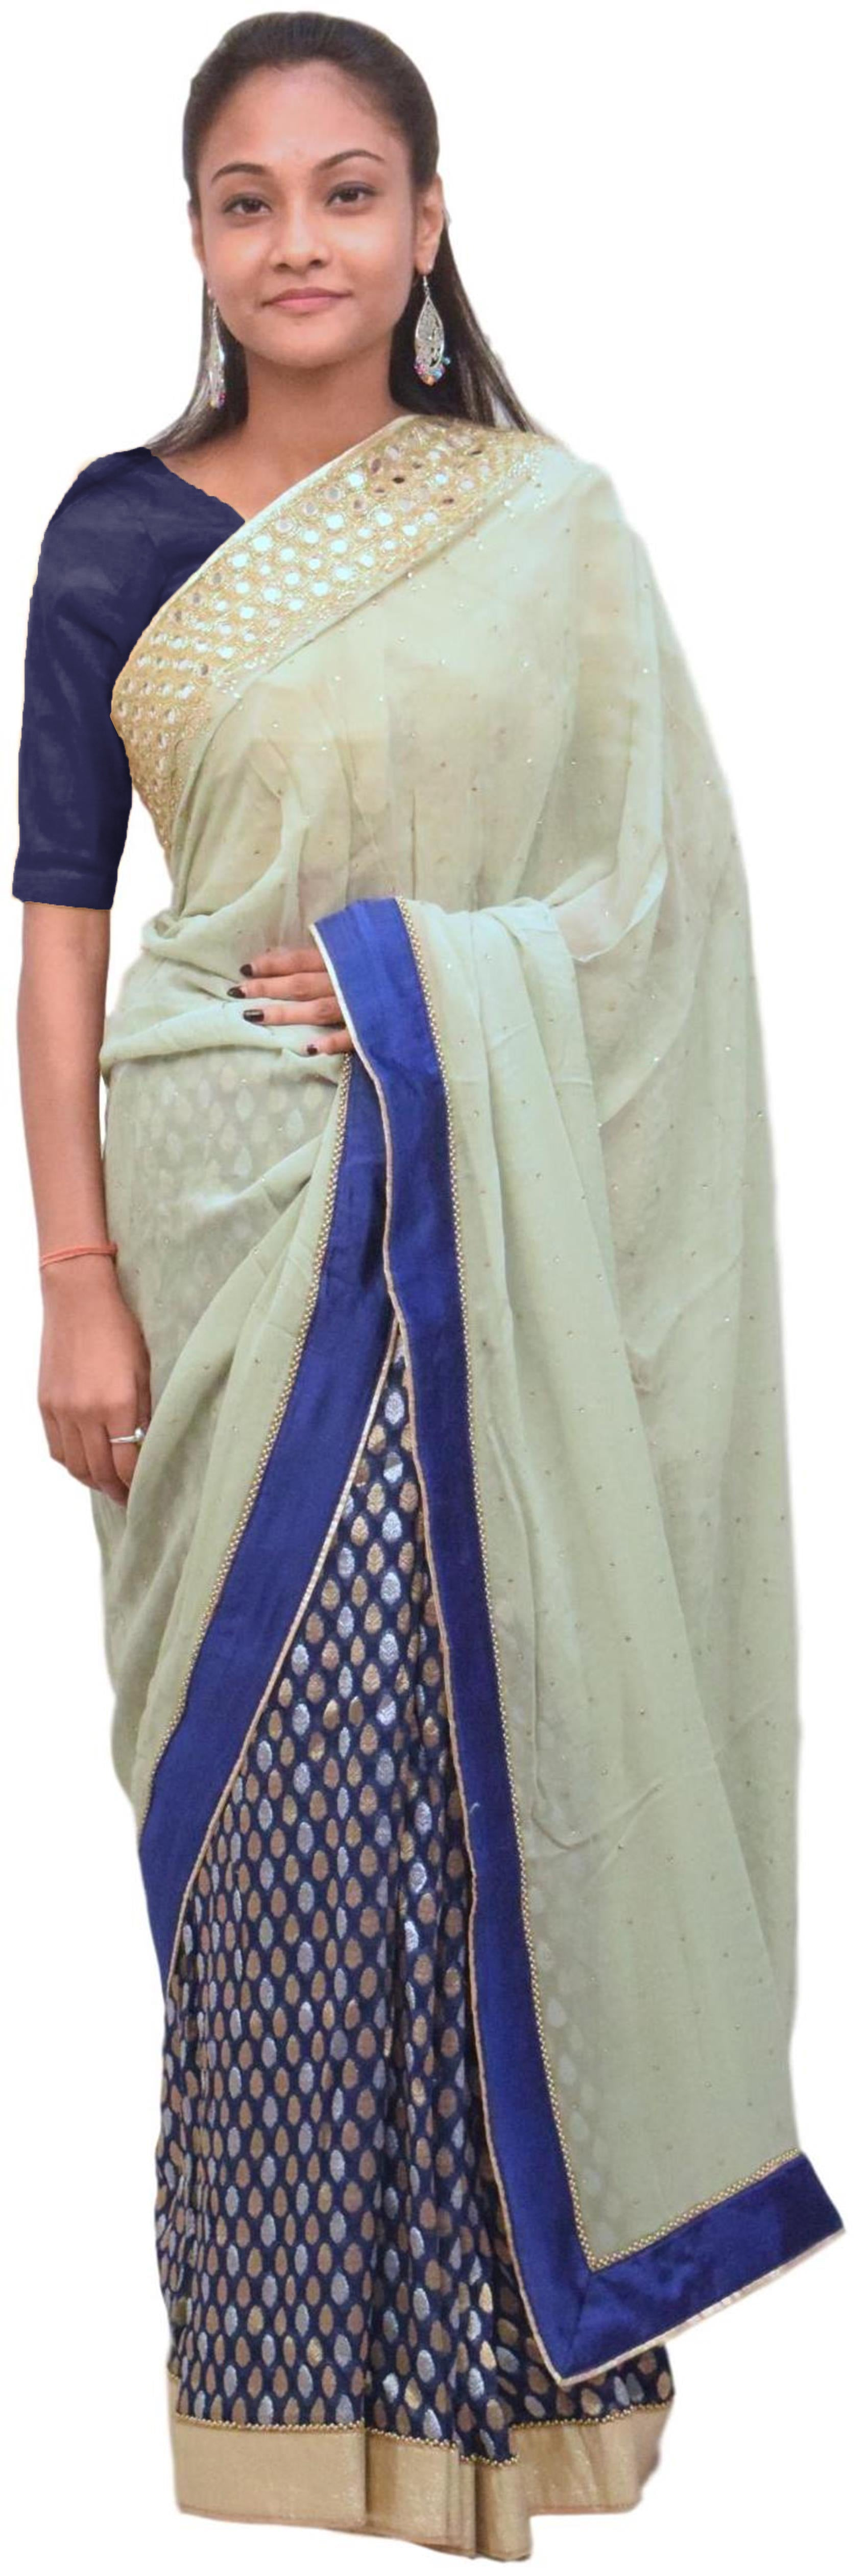 Grey & Blue Designer Wedding Partywear Georgette (Viscos) Hand Embroidery Zari Mirror Cutdana Stone Work Kolkata Saree Sari E415